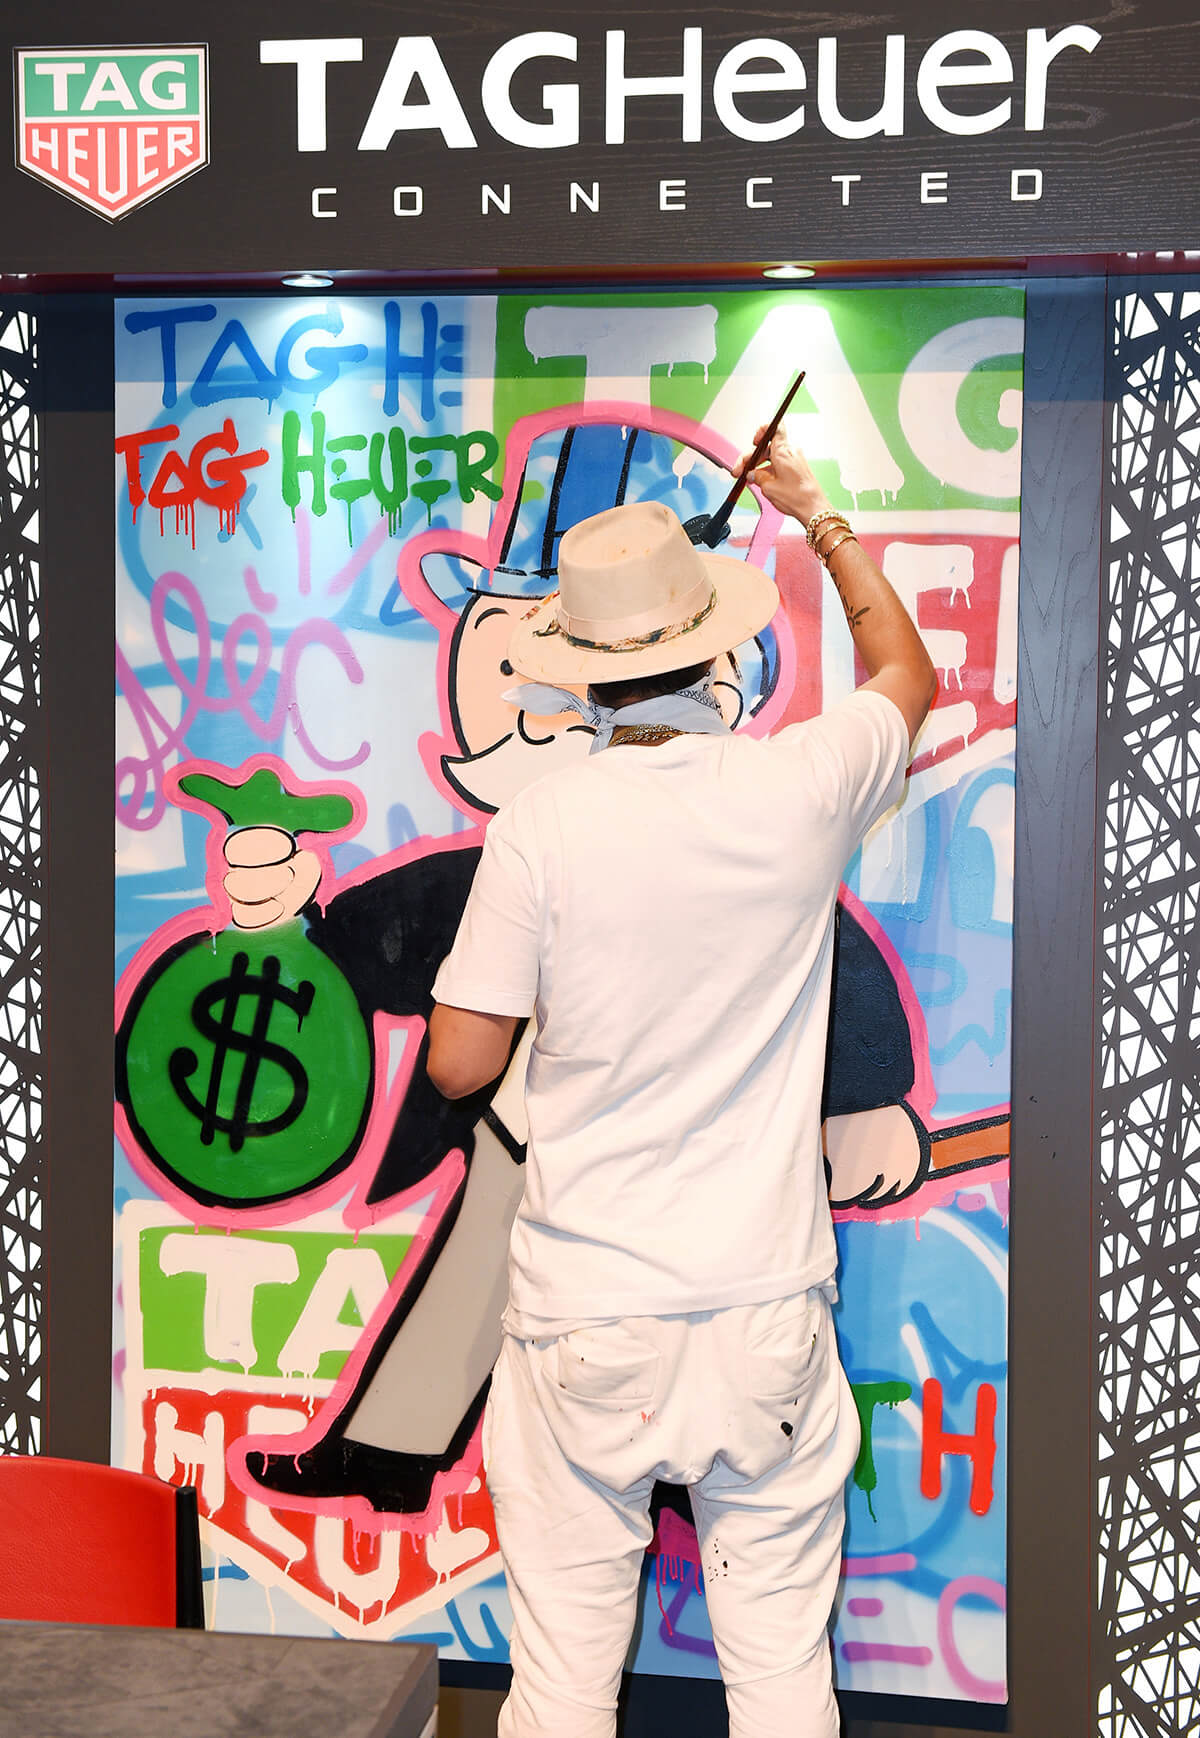 Street artist Alec Monopoly painting TAG Heuer onto wall